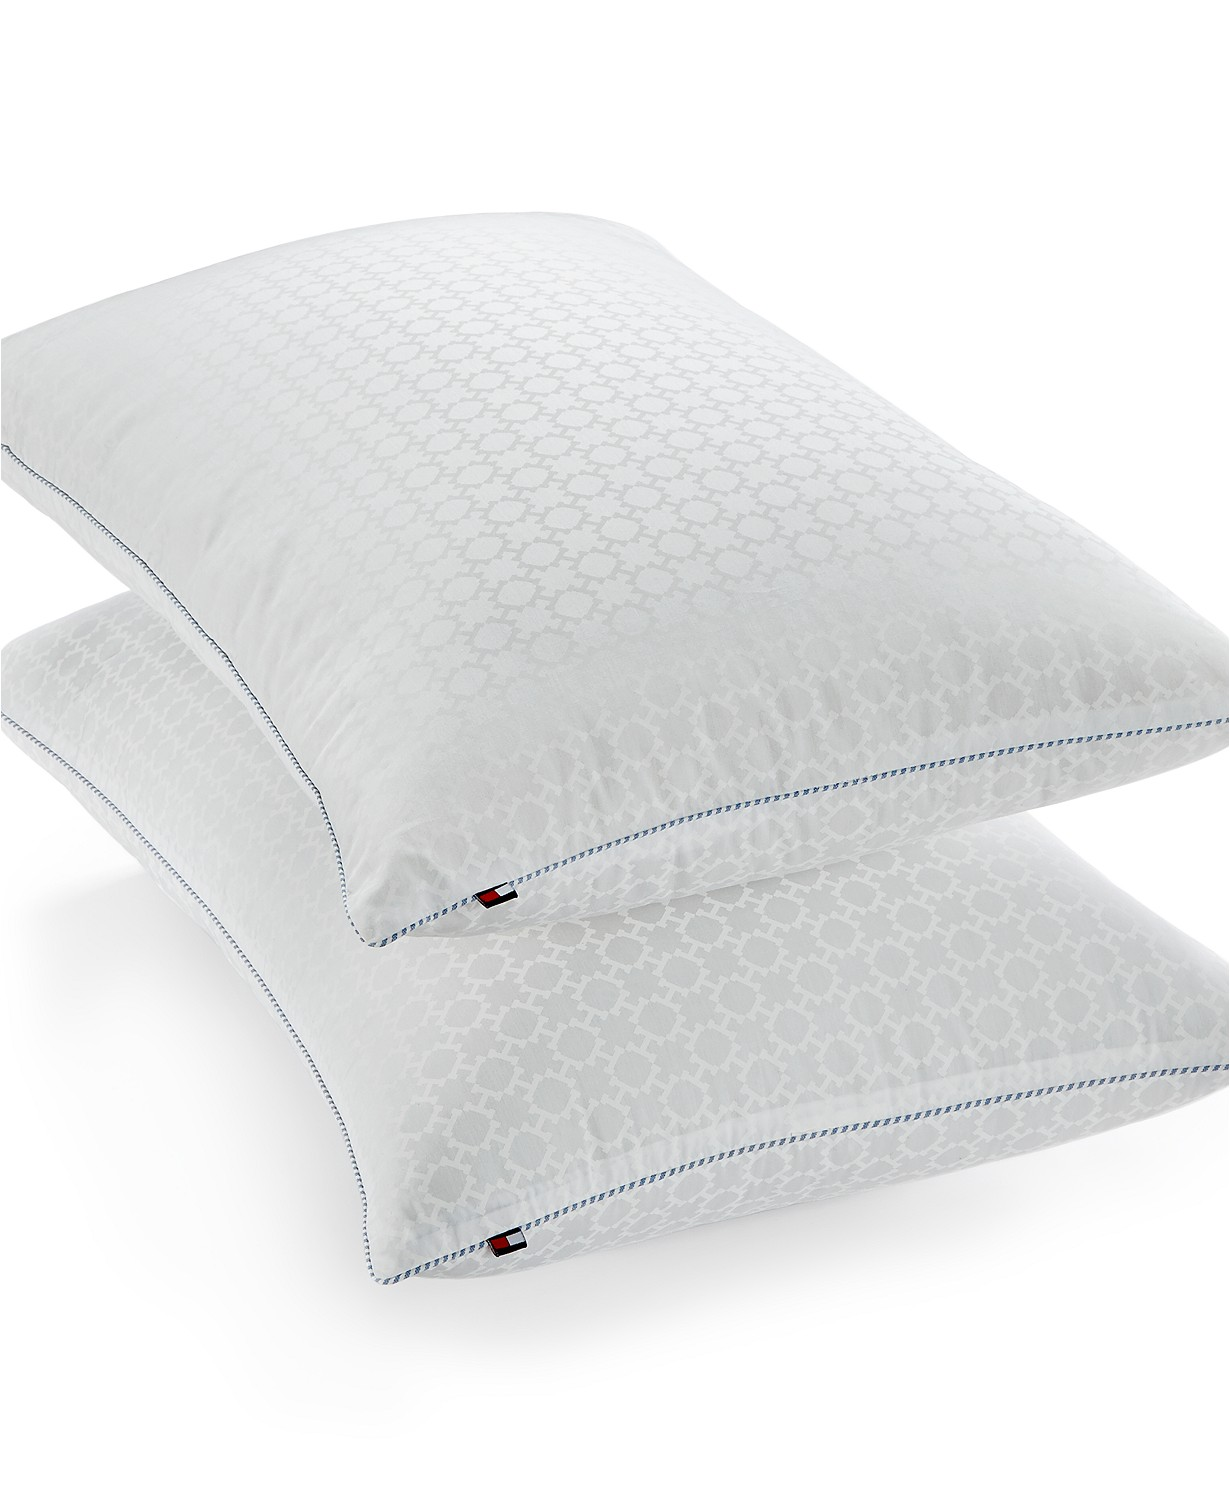 Tommy Hilfiger Home Corded Classic Down Alternative Pillow